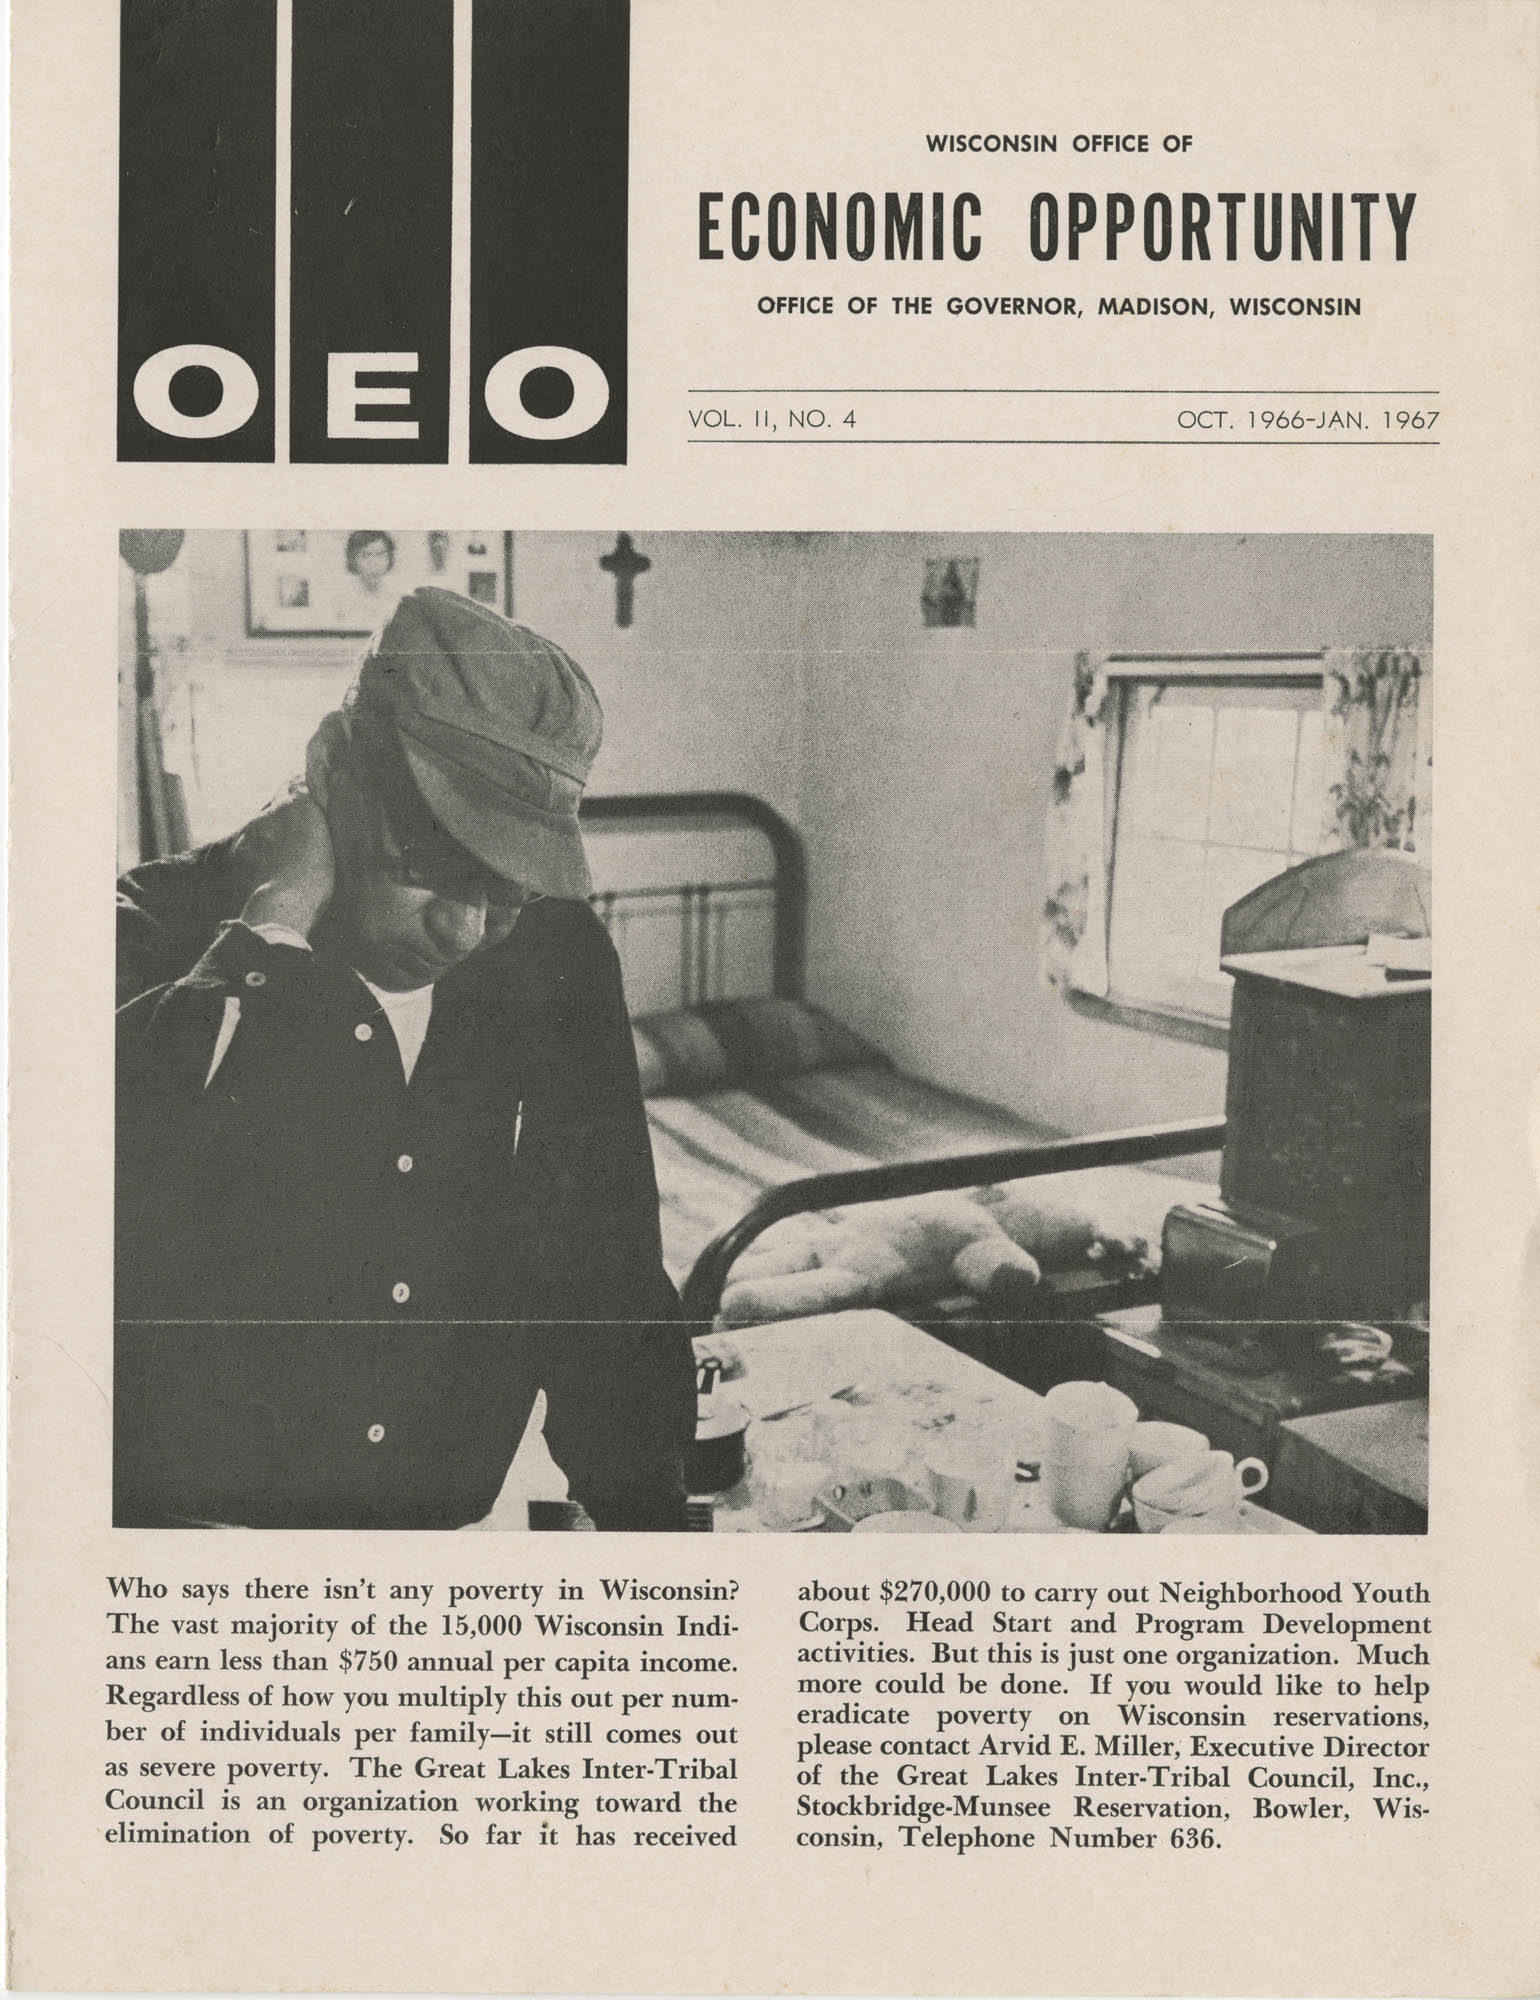 OEO, Vol. II, No. 4